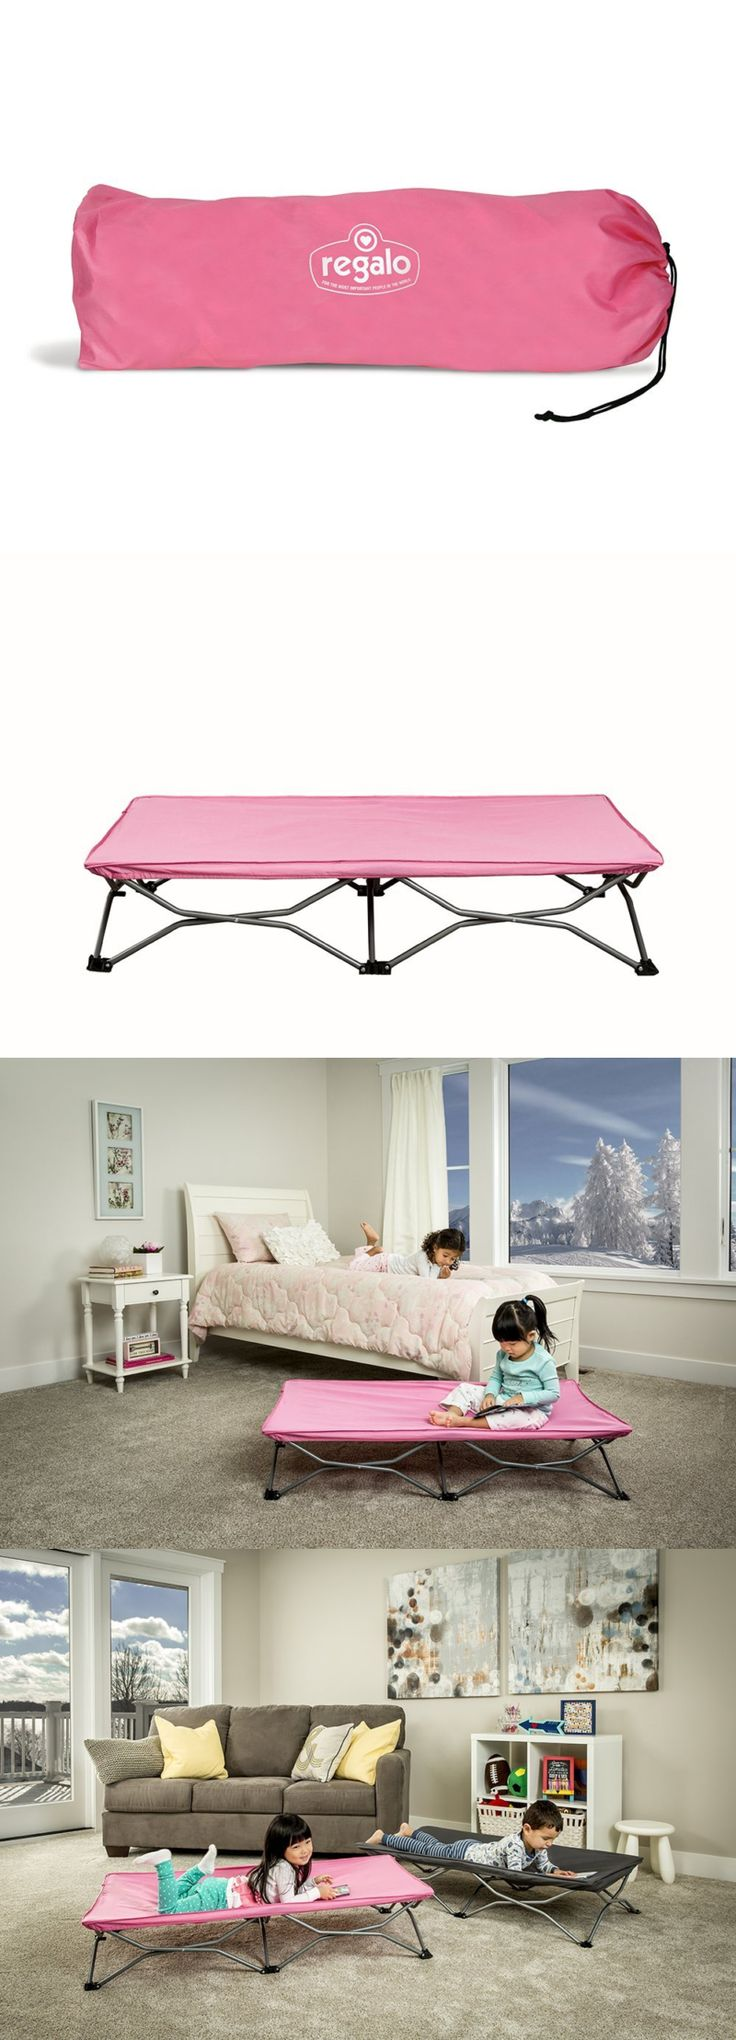 Cots 87099: Regalo My Cot Portable Toddler Bed, Includes Fitted Sheet And Travel Case, Pink -> BUY IT NOW ONLY: $30.4 on eBay!